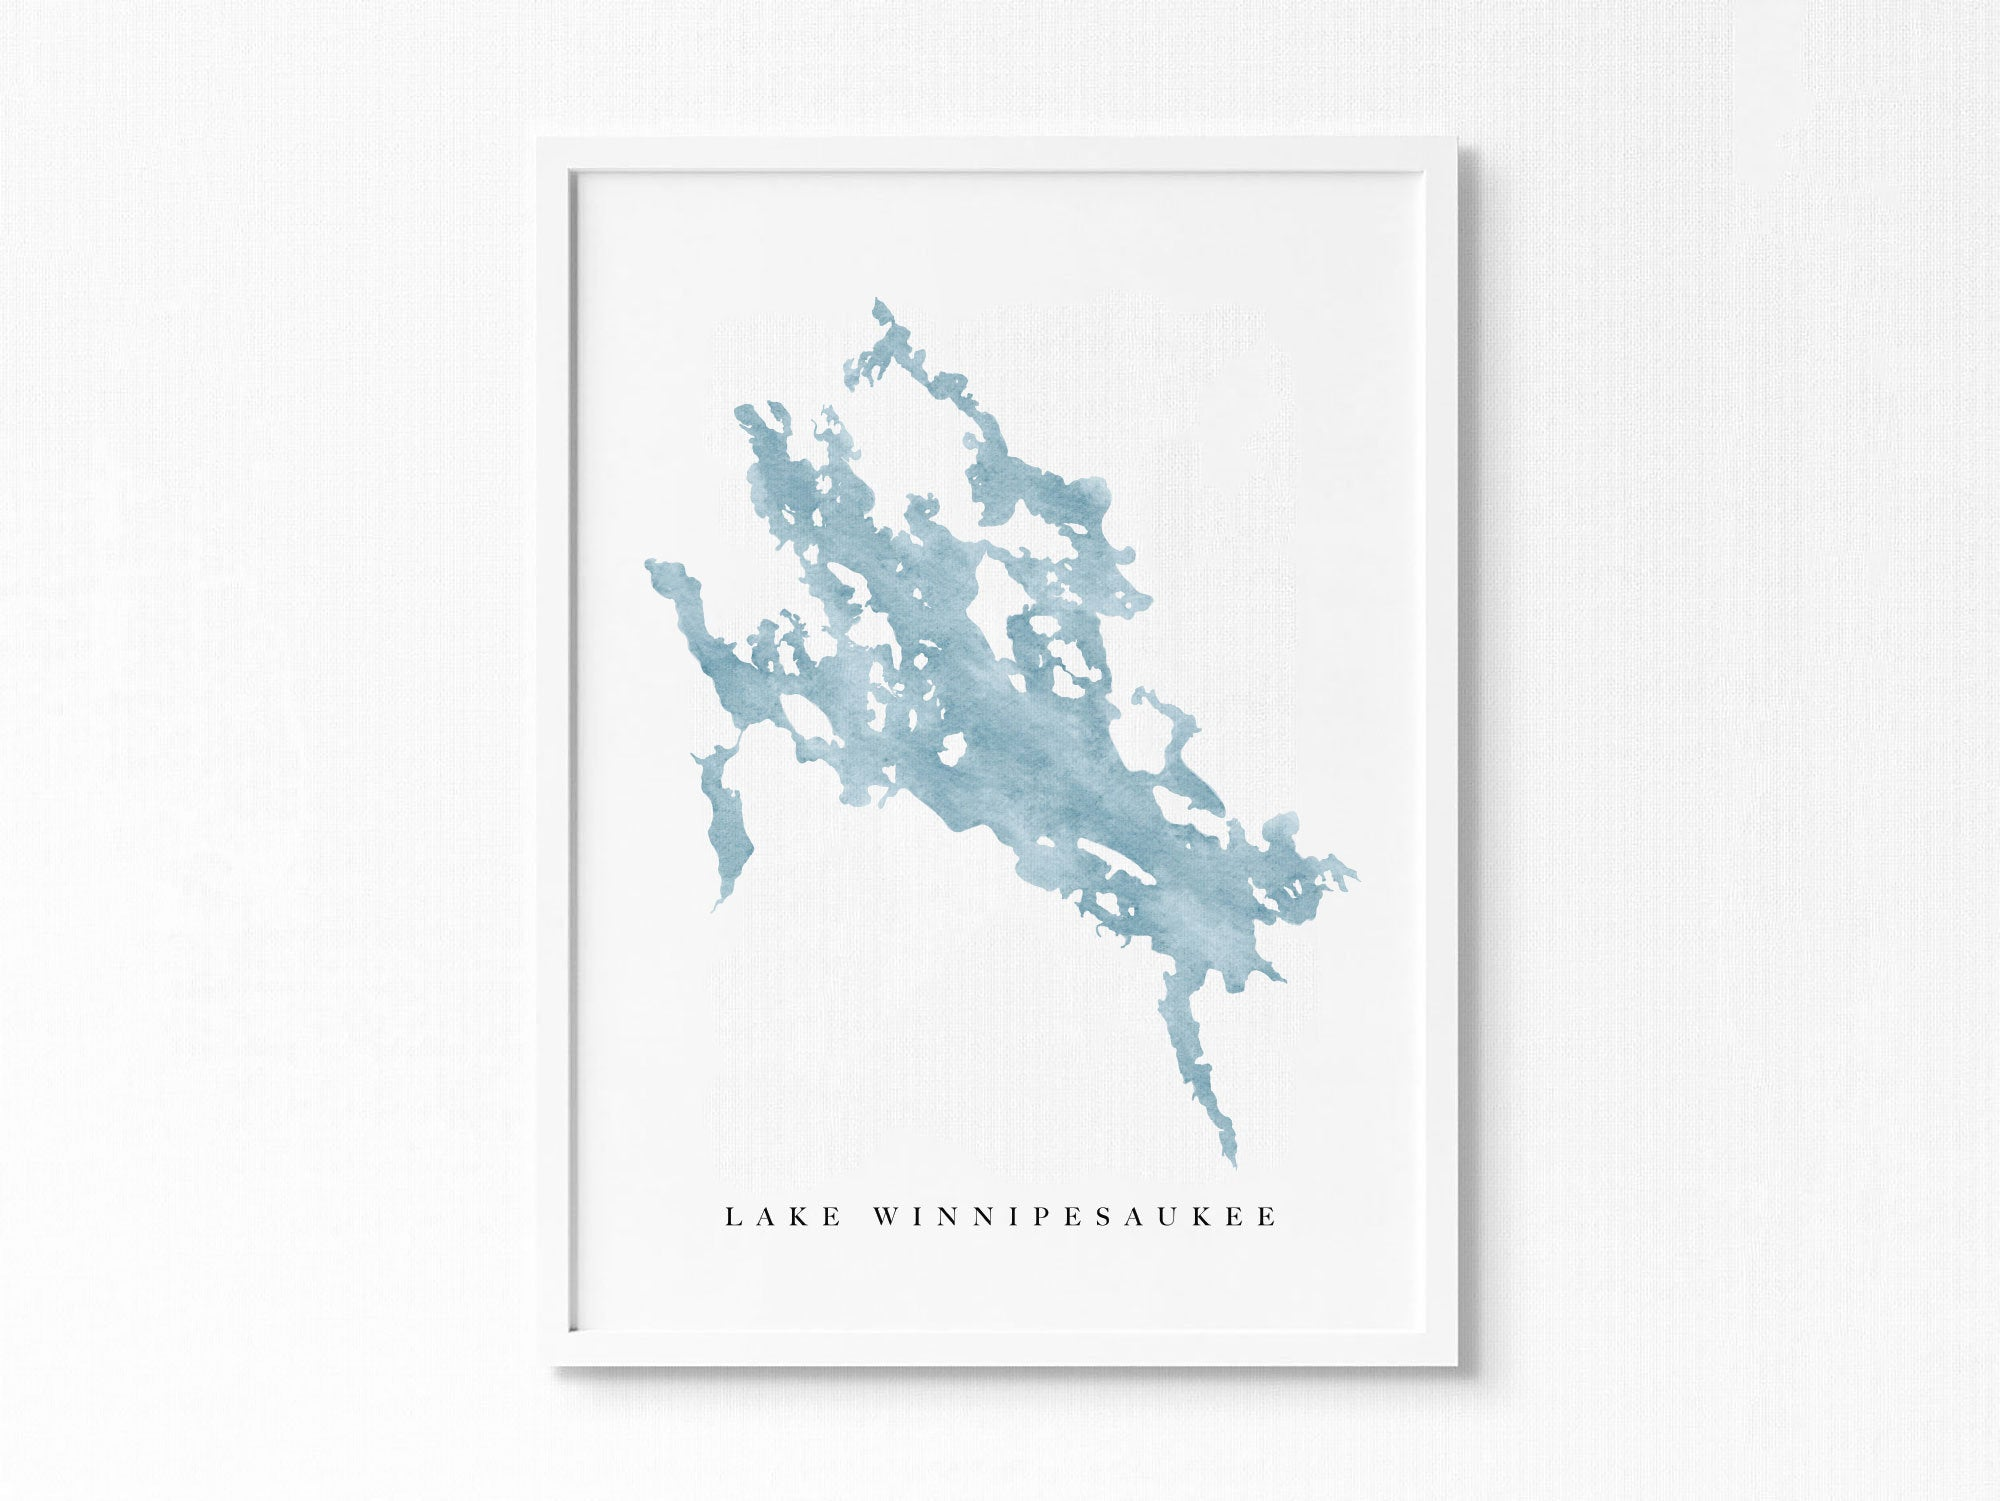 Lake Winnipesaukee | New Hampshire | Lake Map, Lake Decor Gift, Lake Layout | Watercolor-style Print UNFRAMED